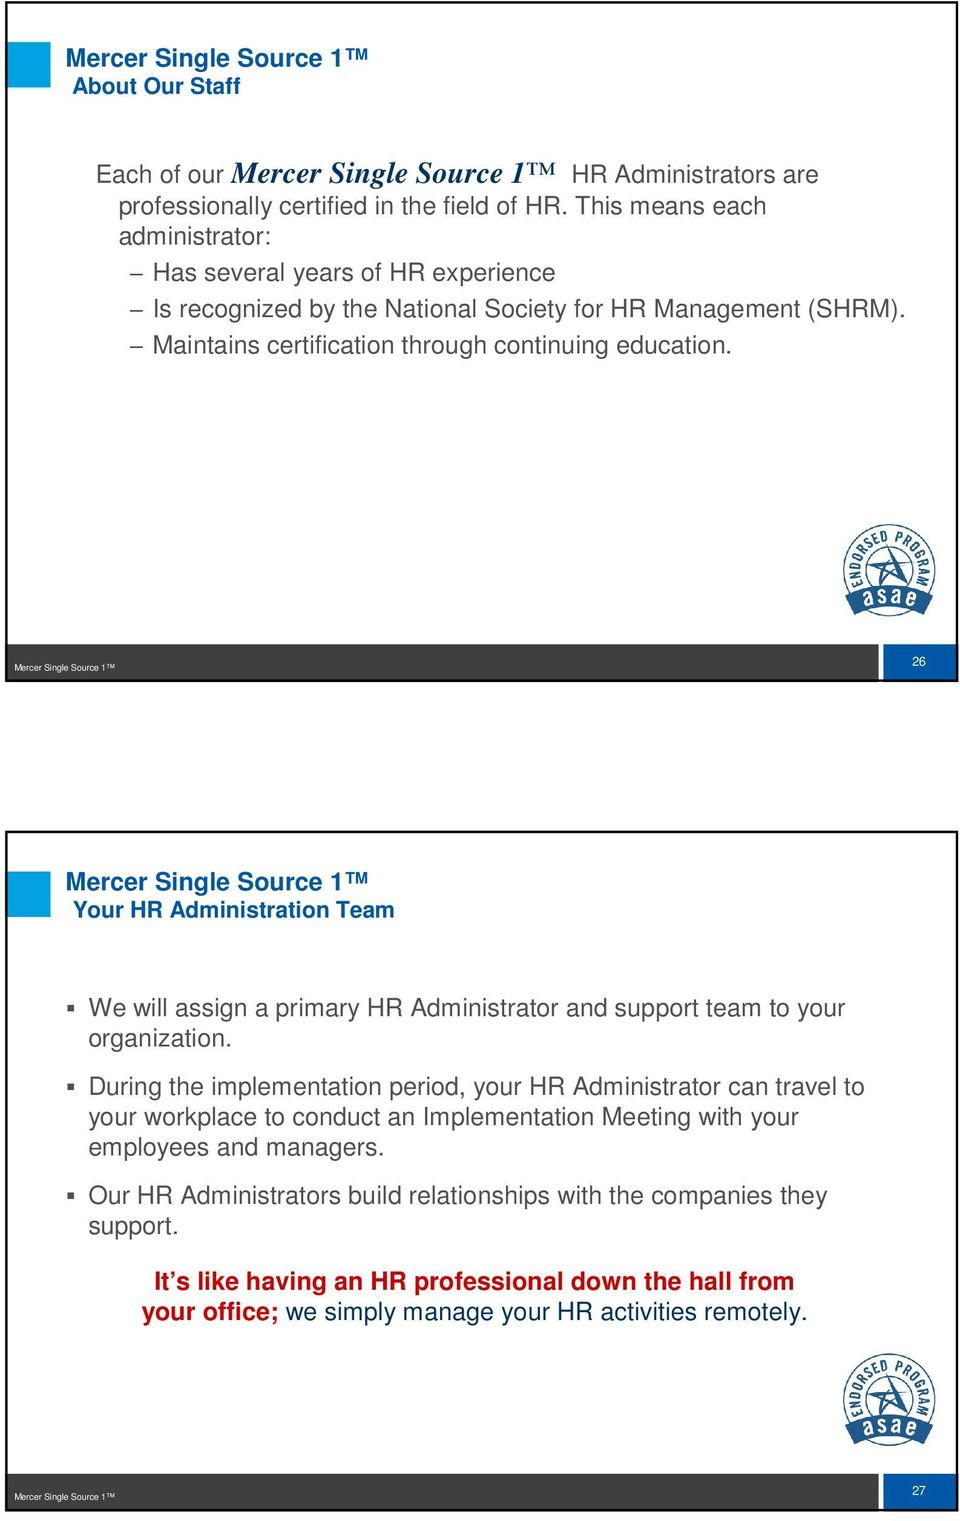 Mercer Single Source 1 26 Mercer Single Source 1 Your HR Administration Team We will assign a primary HR Administrator and support team to your organization.